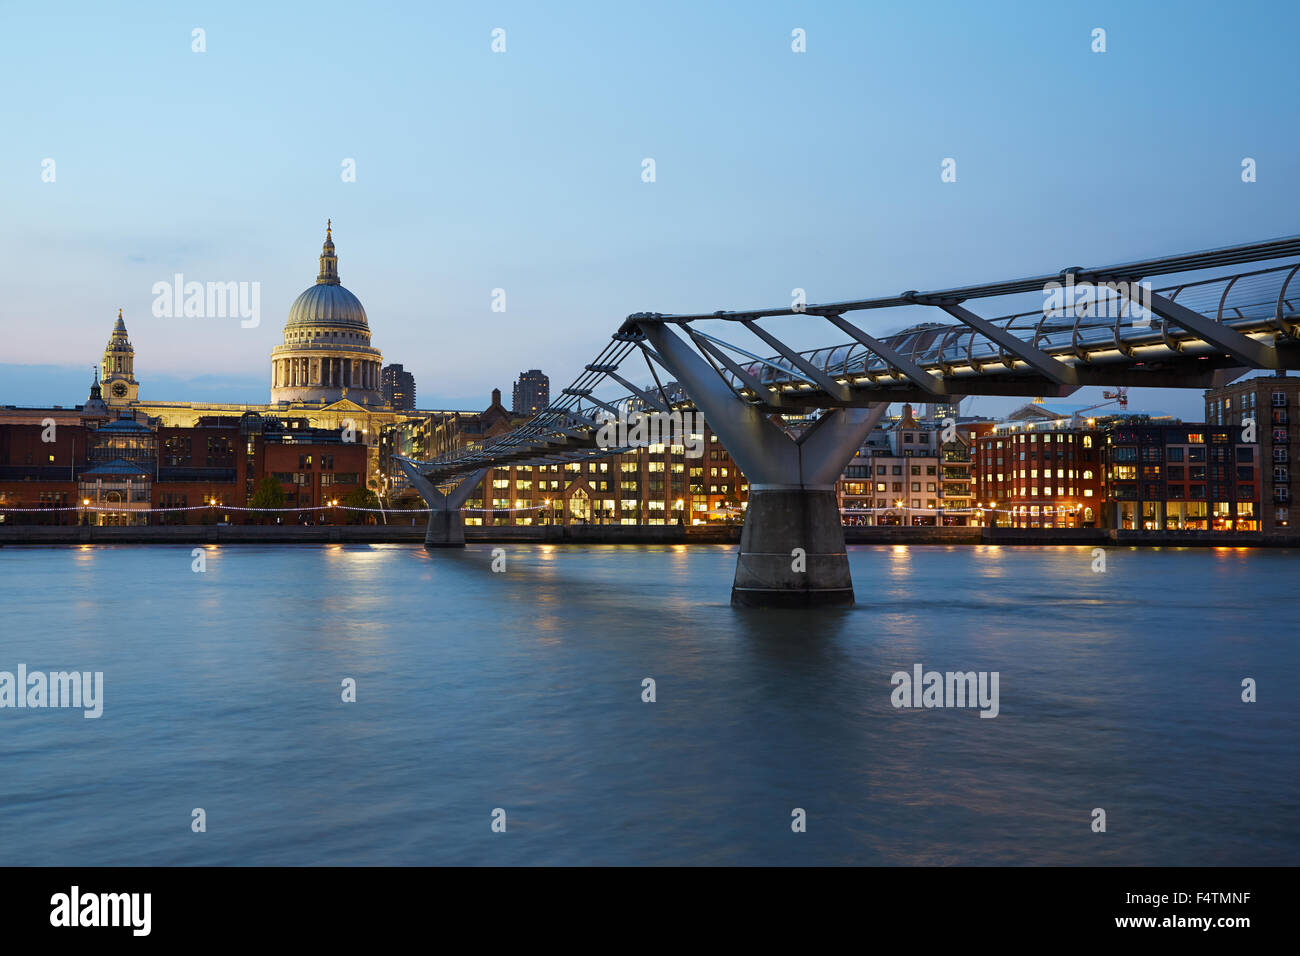 St Paul's Cathedral and Millennium bridge in London at night, natural colors - Stock Image